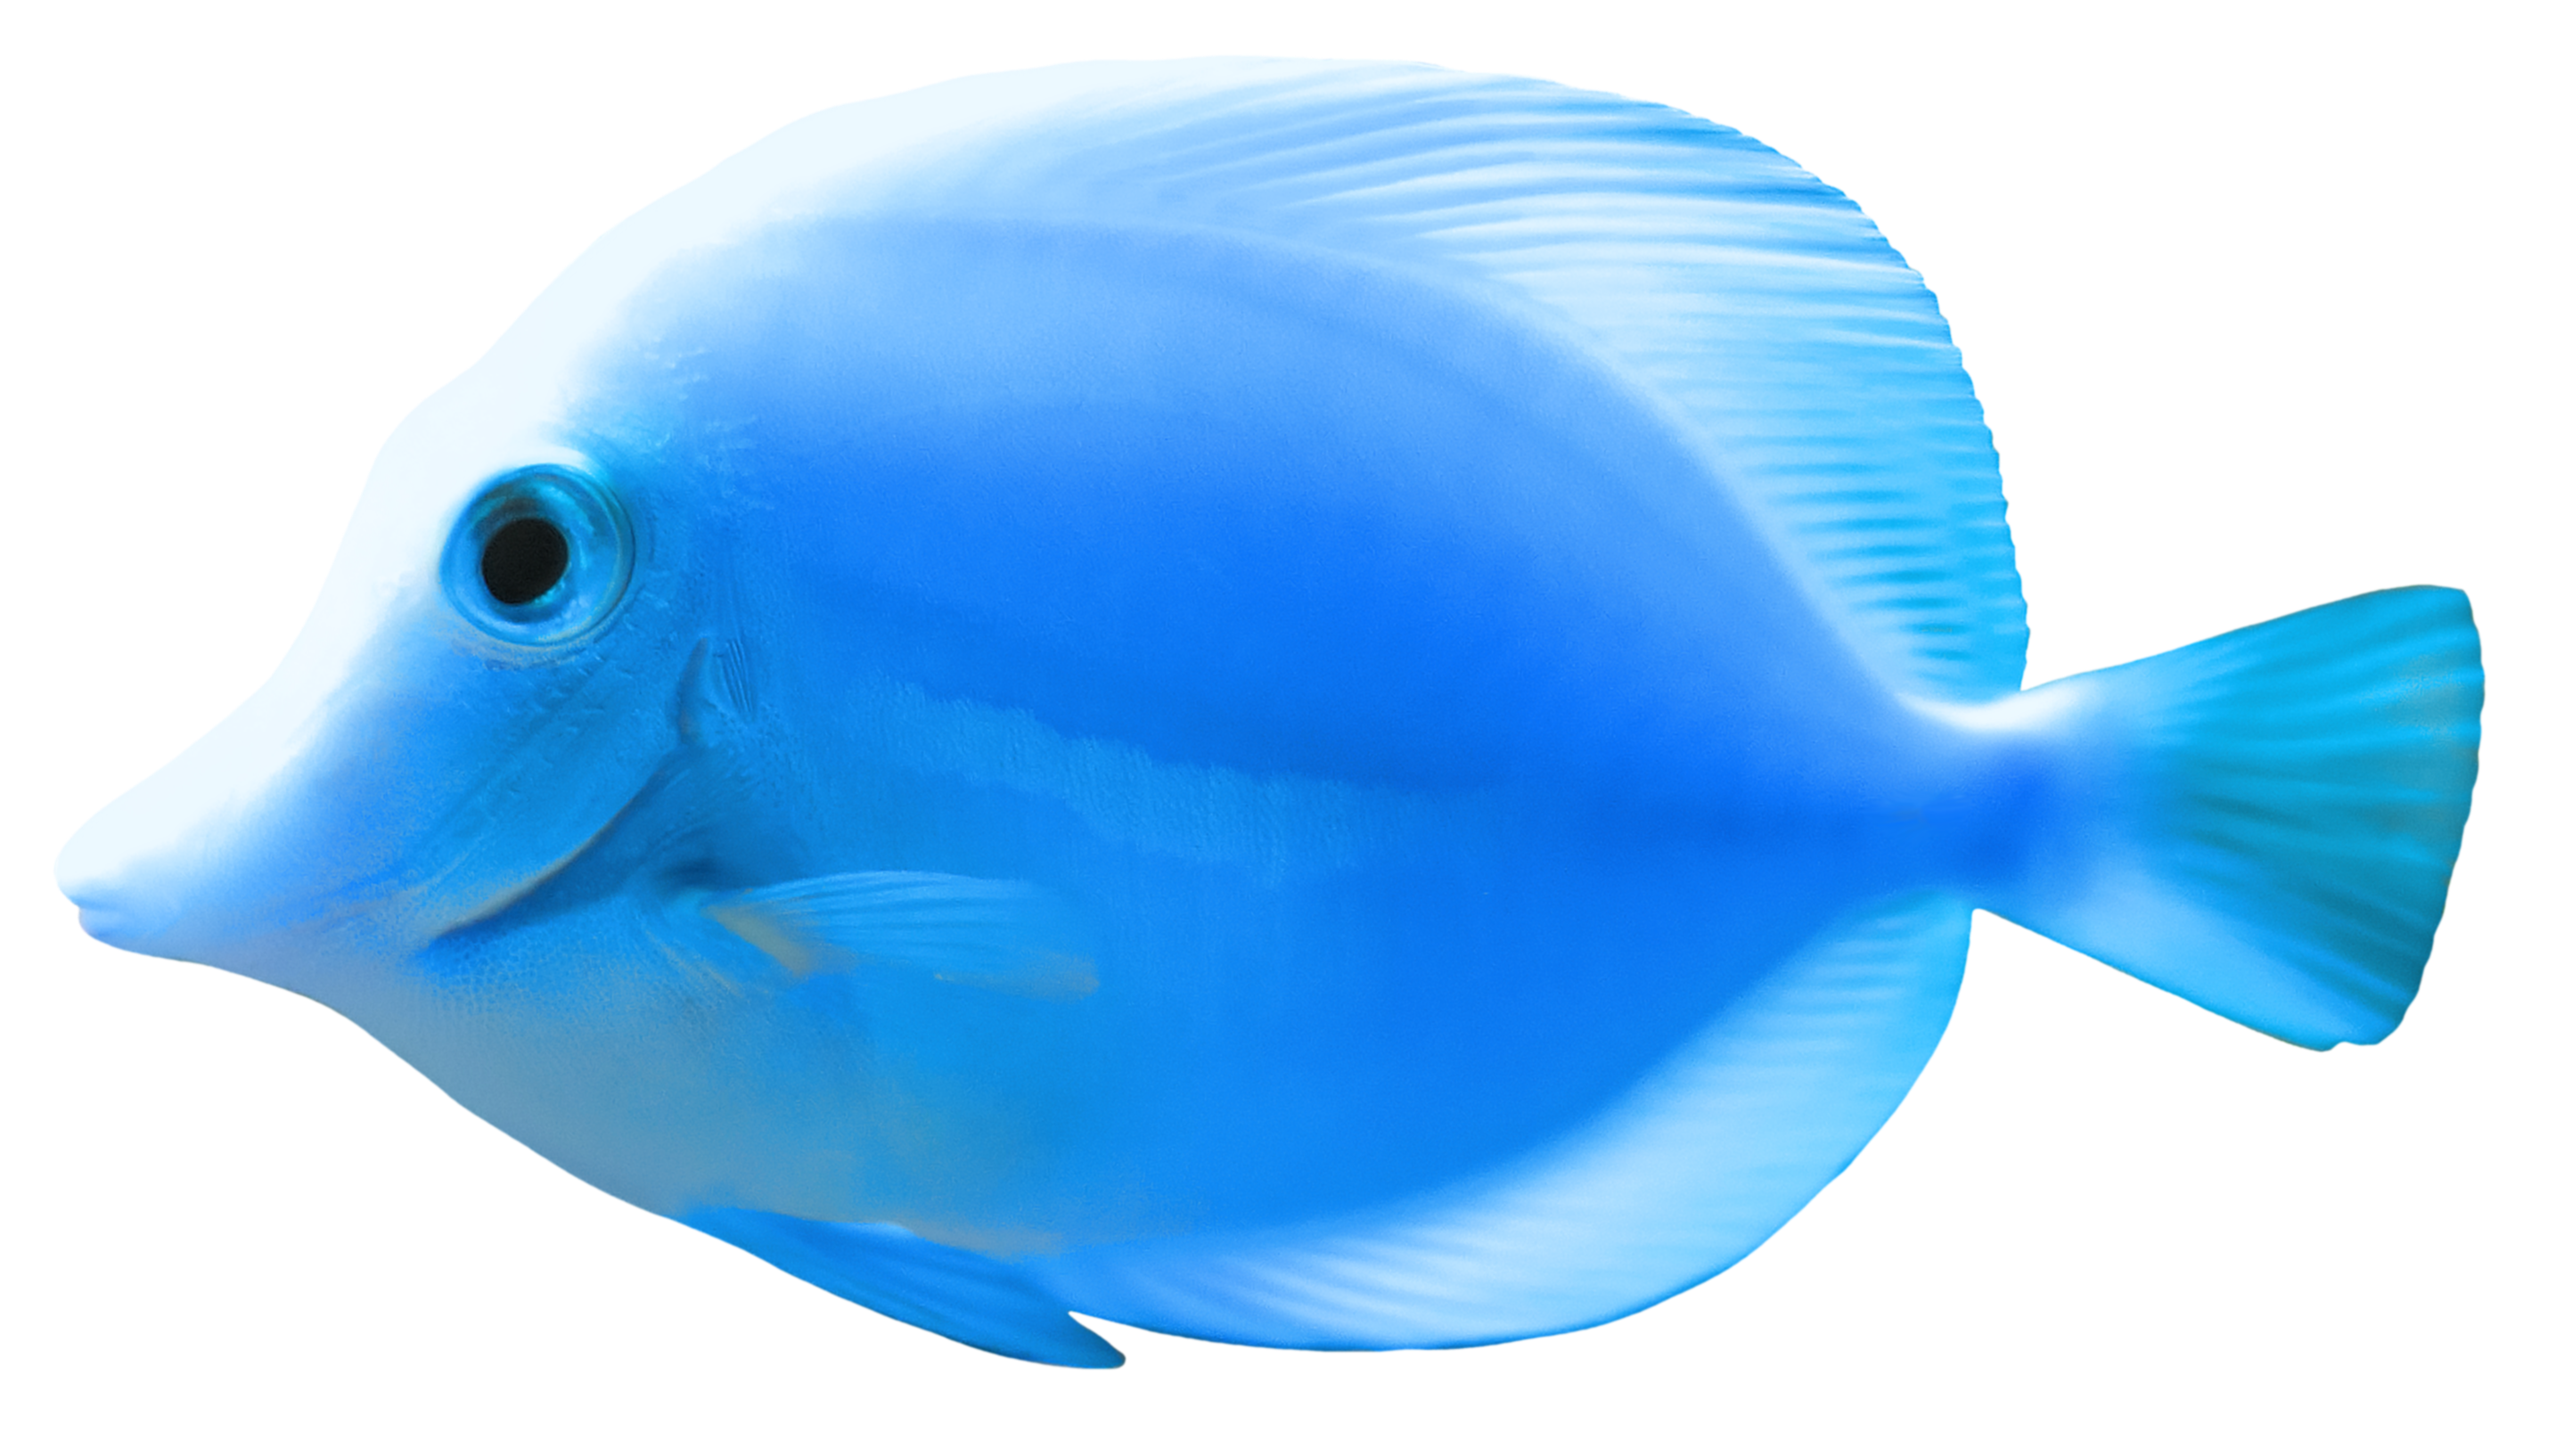 Fish Backgrounds on Wallpapers Vista